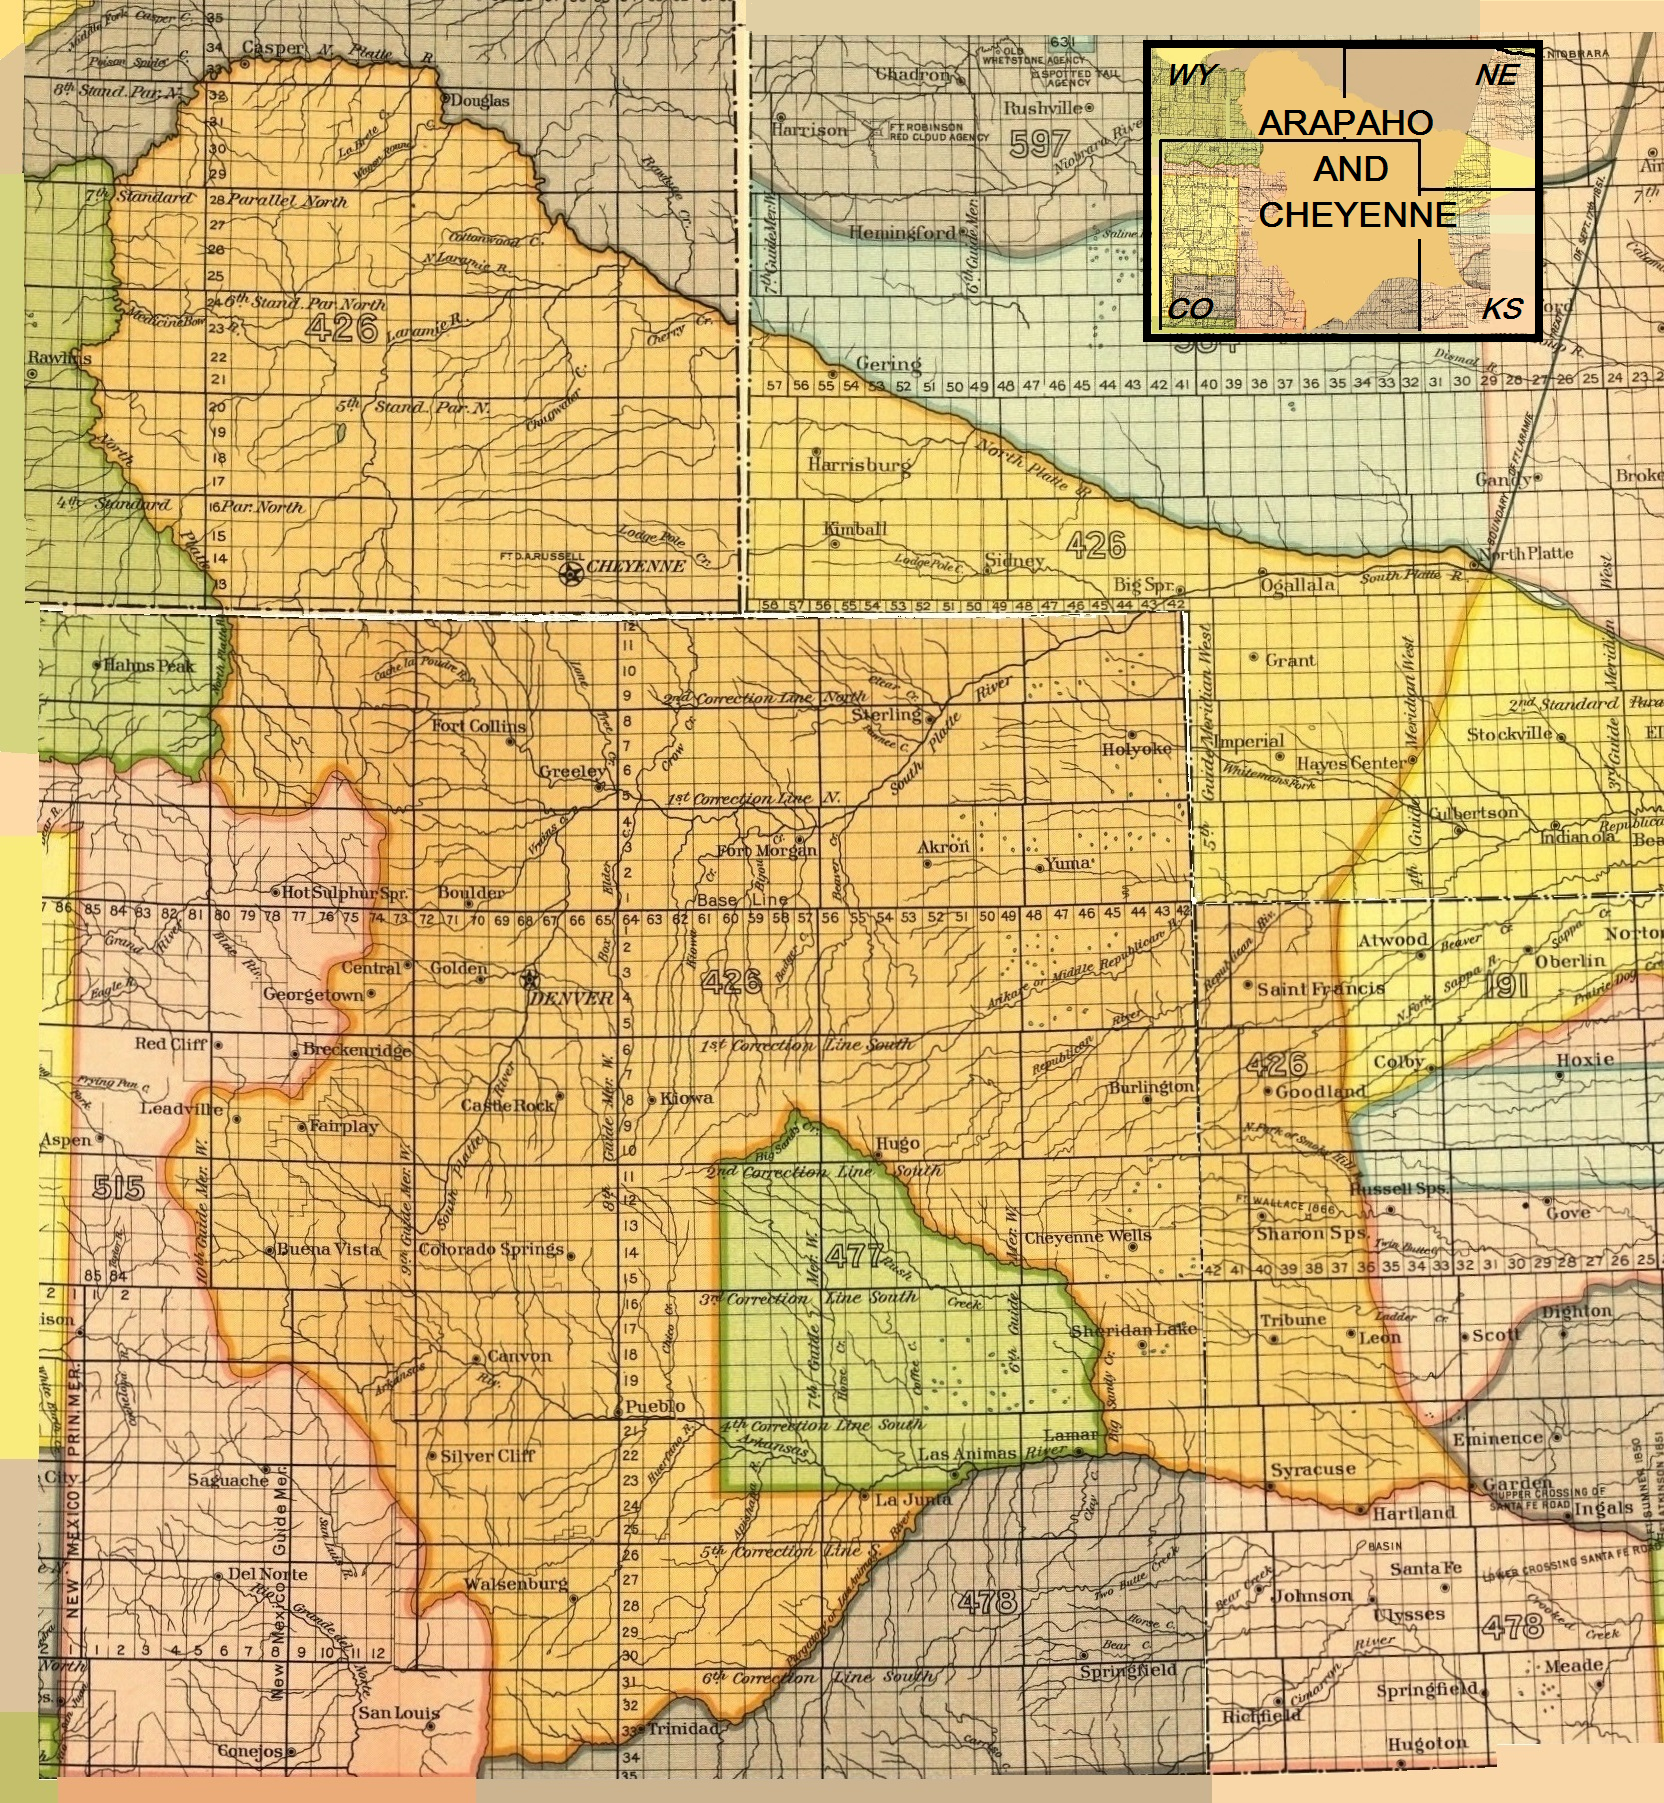 Cheyenne wikipedia arapaho and cheyenne 1851 treaty territory area 426 and 477 area 477 is the reserve established by treaty of fort wise february 18 1861 biocorpaavc Images